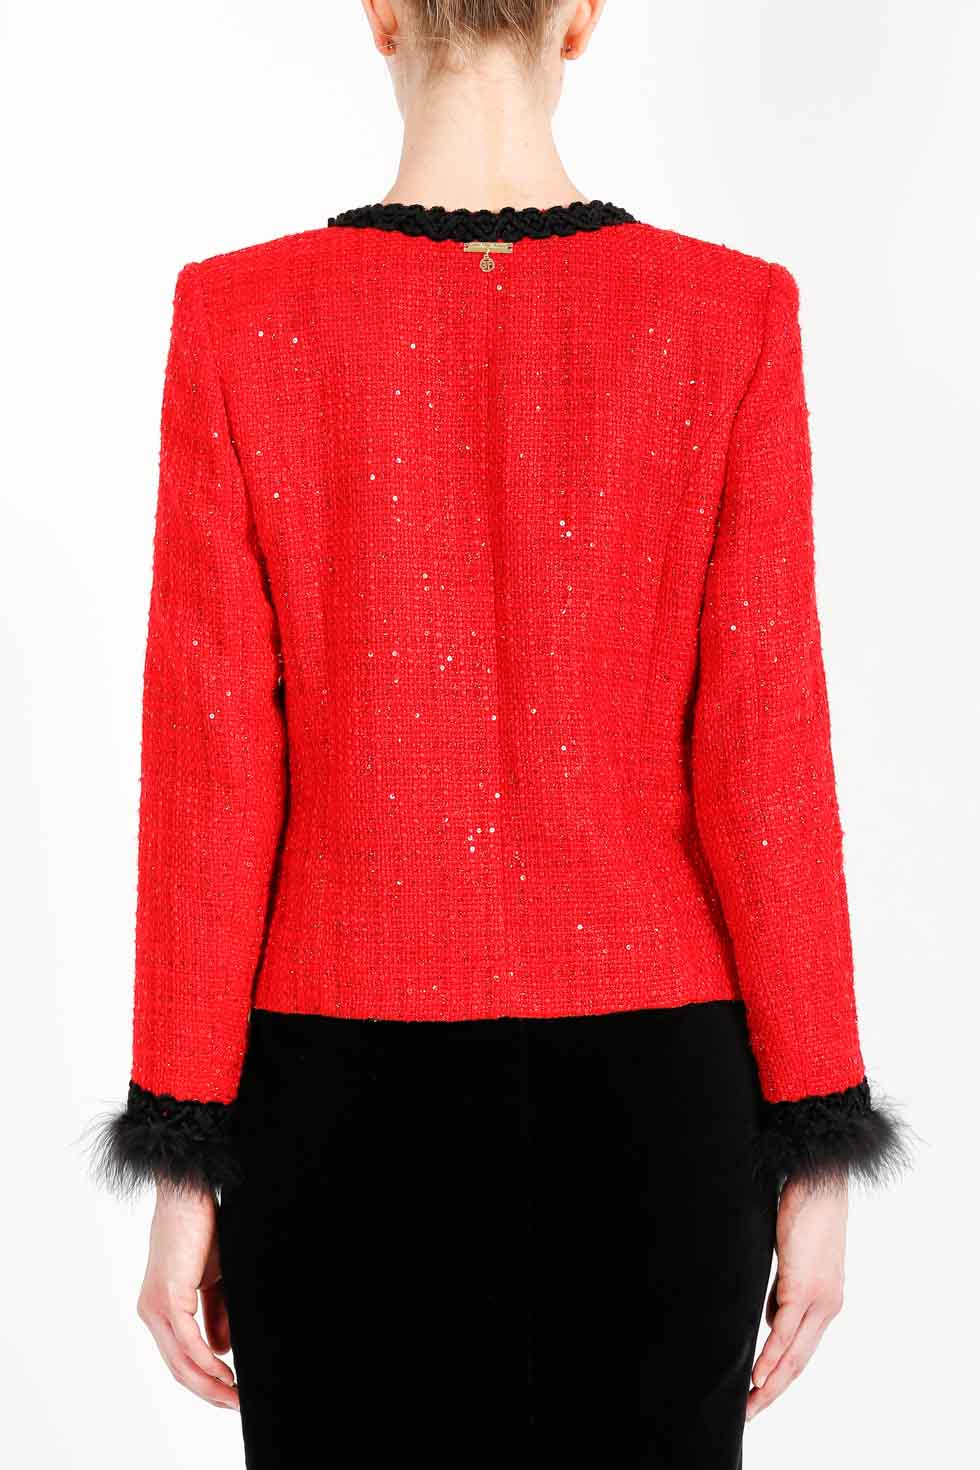 ELISA FANTI FW 2020/21 SERIE EFIconicRoses GIACCA MONOPETTO IN TWEED CON PAILETTES